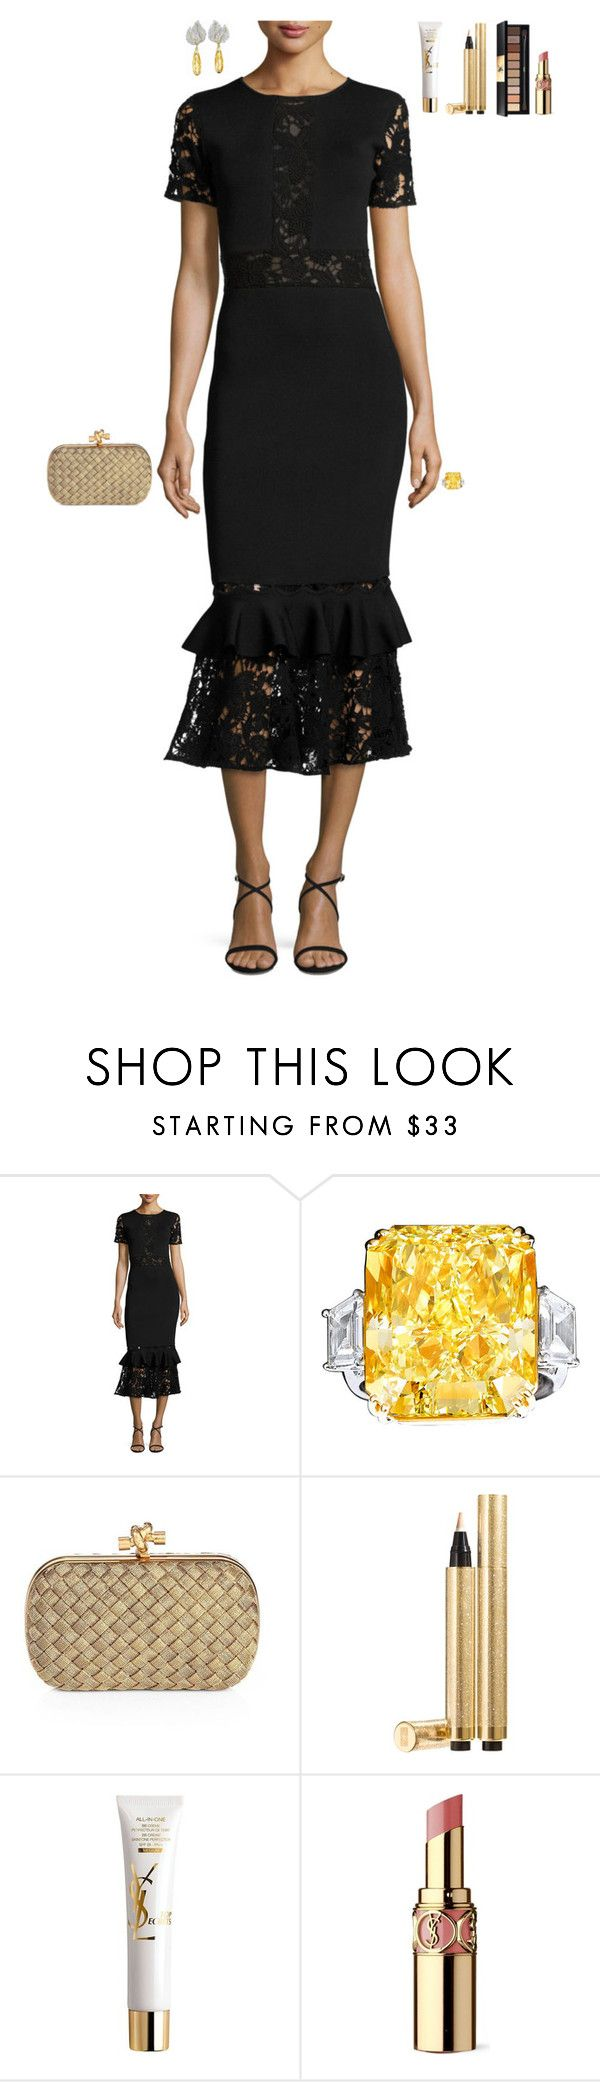 """""""Opening Night at the Theater"""" by stylev ❤ liked on Polyvore featuring NOIR Sachin + Babi, Bottega Veneta and Yves Saint Laurent"""